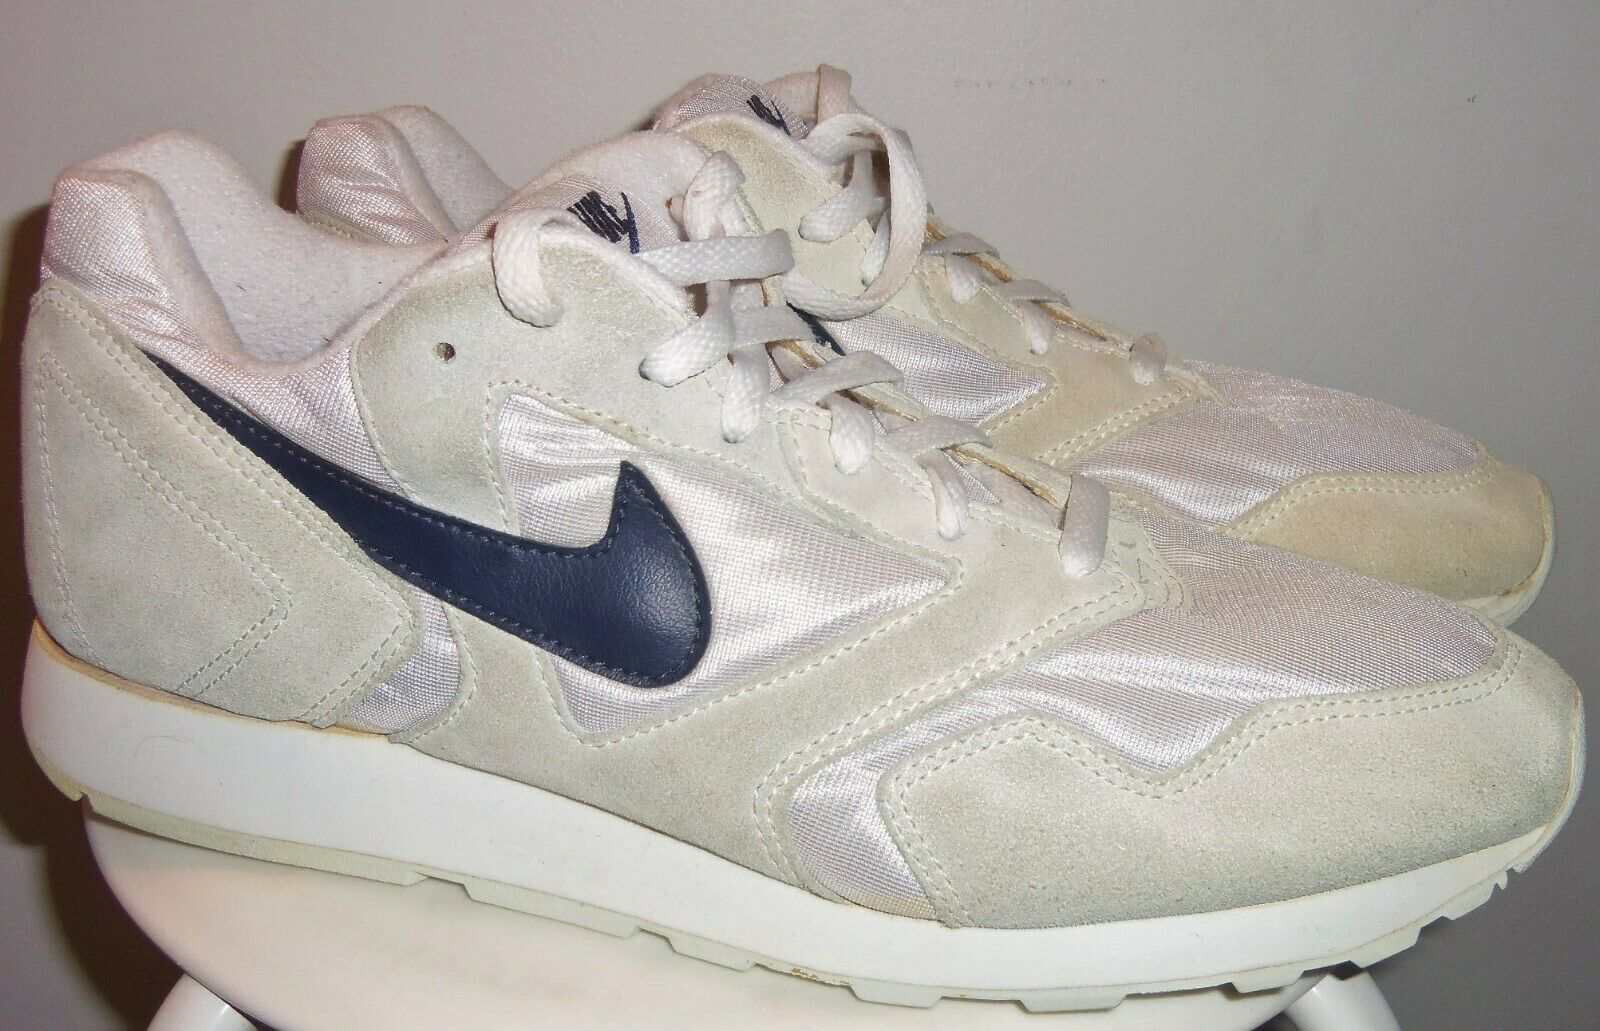 VTG 1993 NIKE DECADE HEAVENS GATE (WHT  NVY) FOLLOW ME RUNNING SHOES 13 (90's)